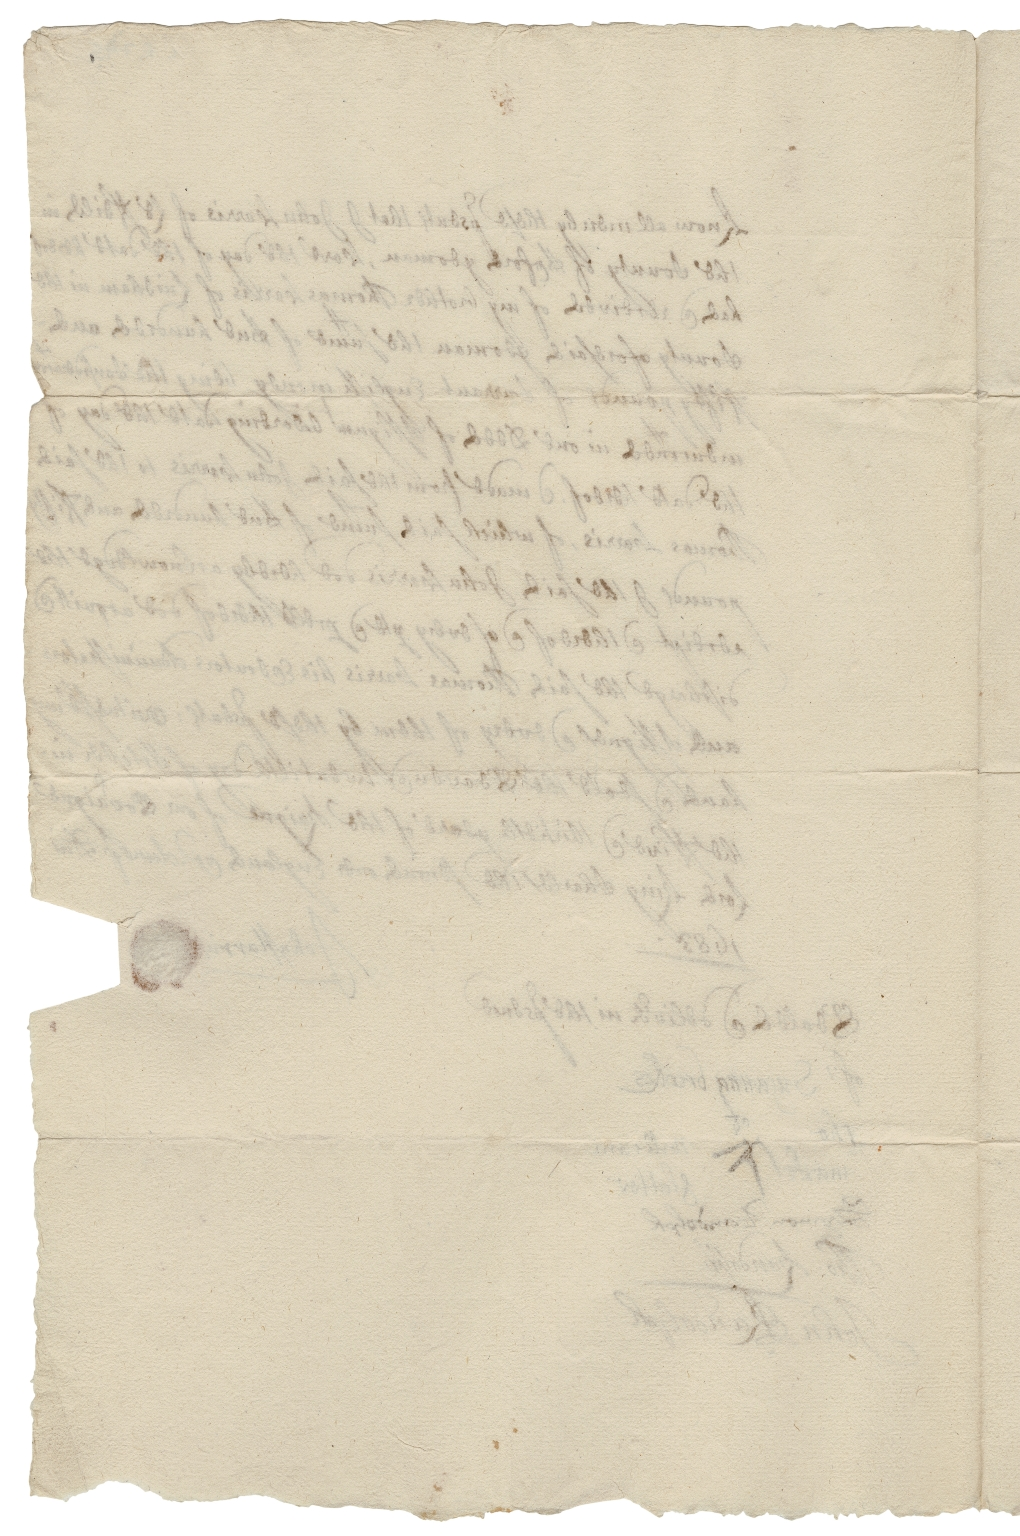 Acquittance from John Harris of Leafield, Oxfordshire, to Thomas Harris of Lindham, Oxfordshire